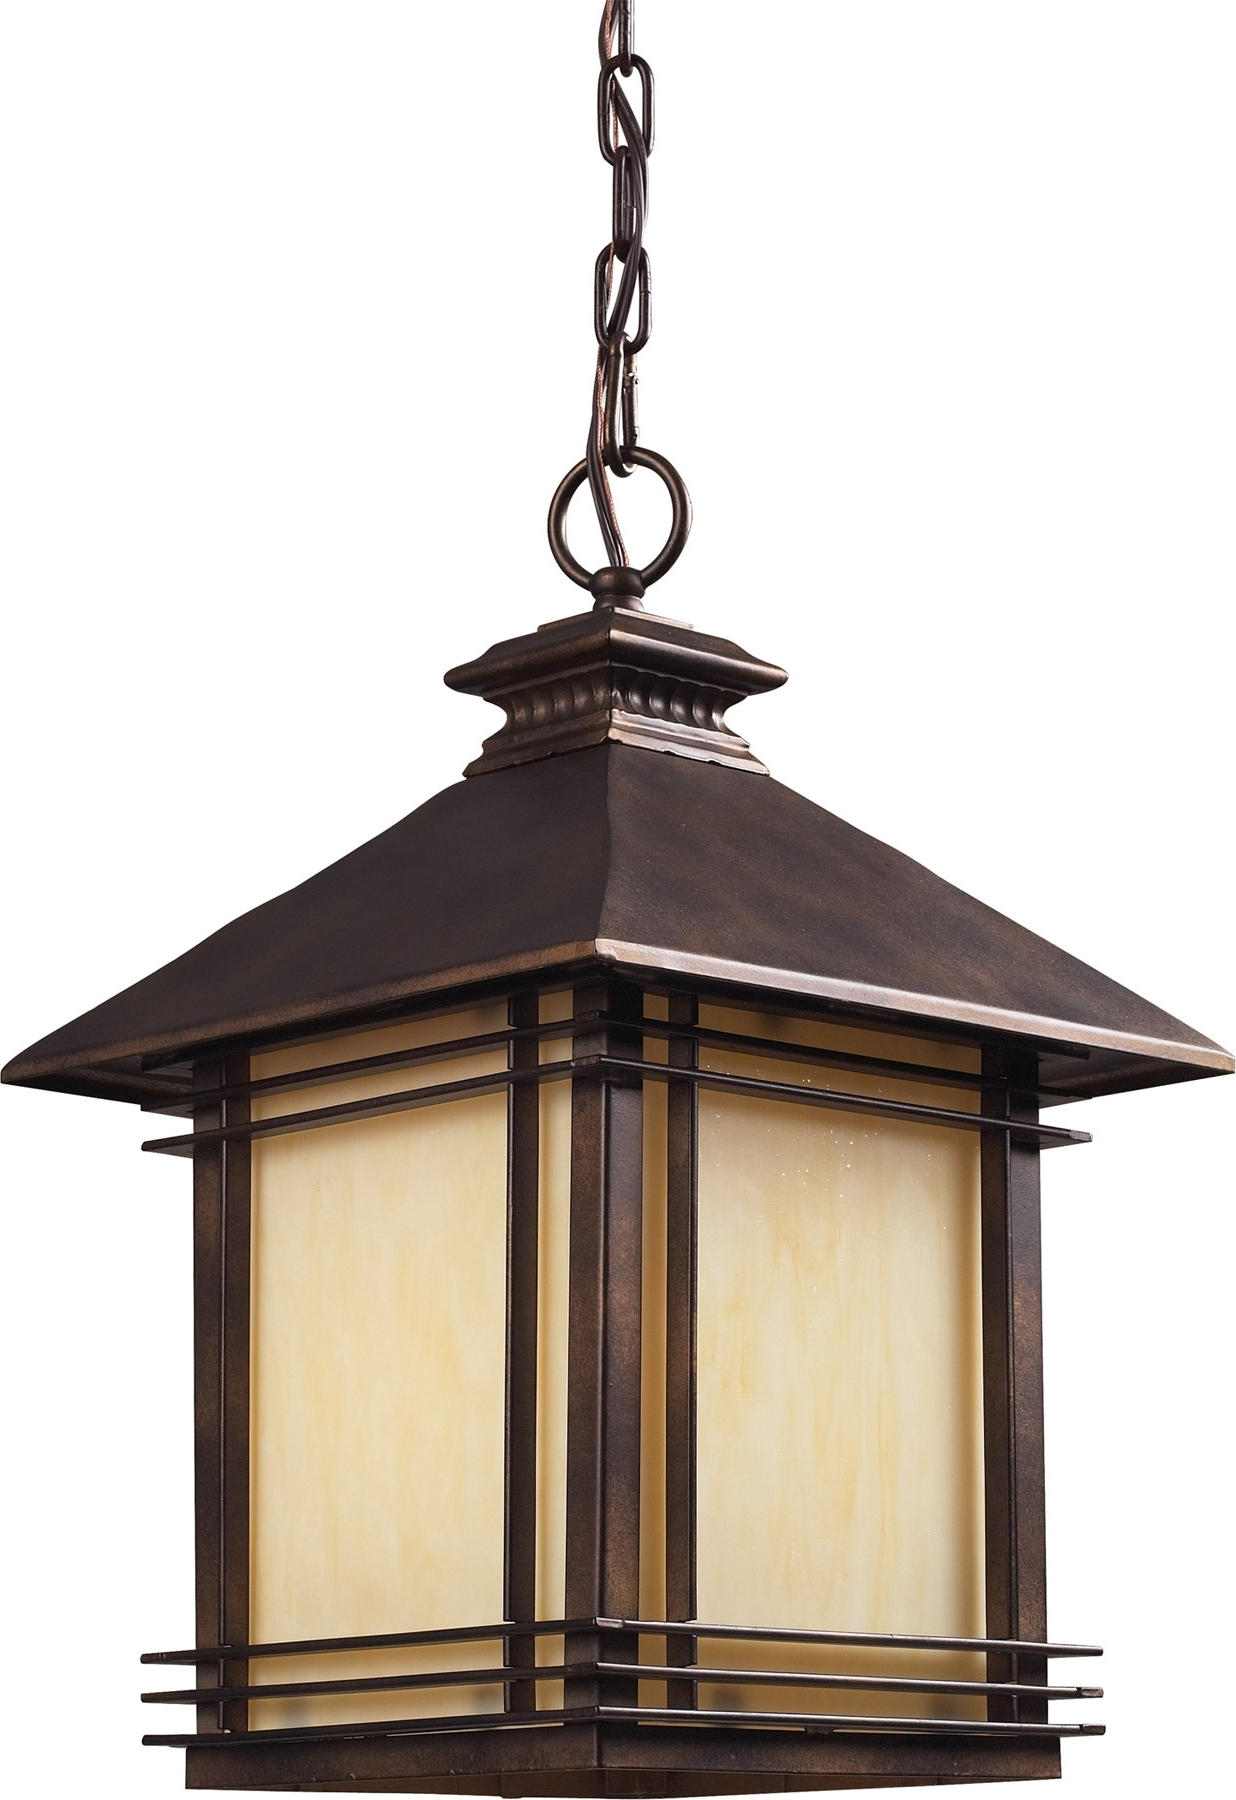 Preferred Elk Lighting 42103/1 Blackwell Outdoor Hanging Lantern Throughout Outdoor Hanging Lanterns (View 5 of 20)